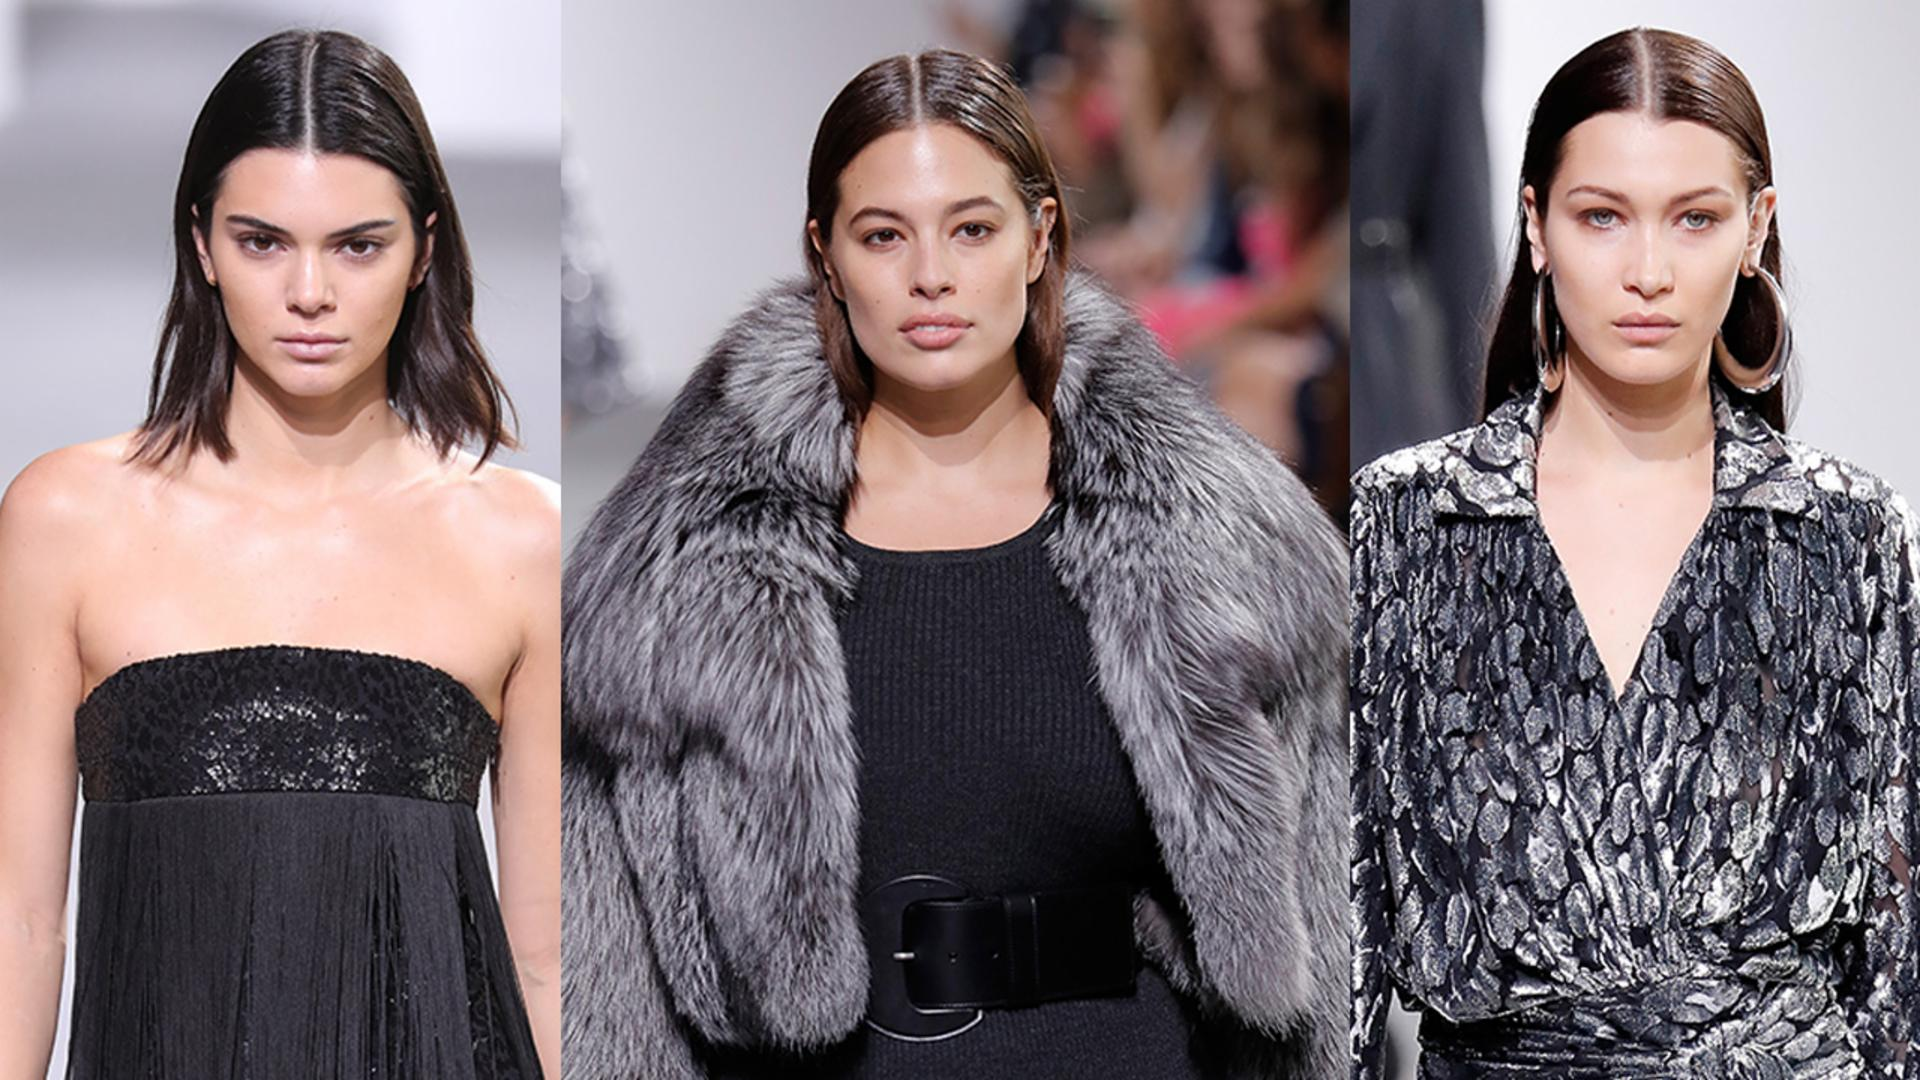 Michael Kors FINALLY Put A Plus-Size Model On The Runway